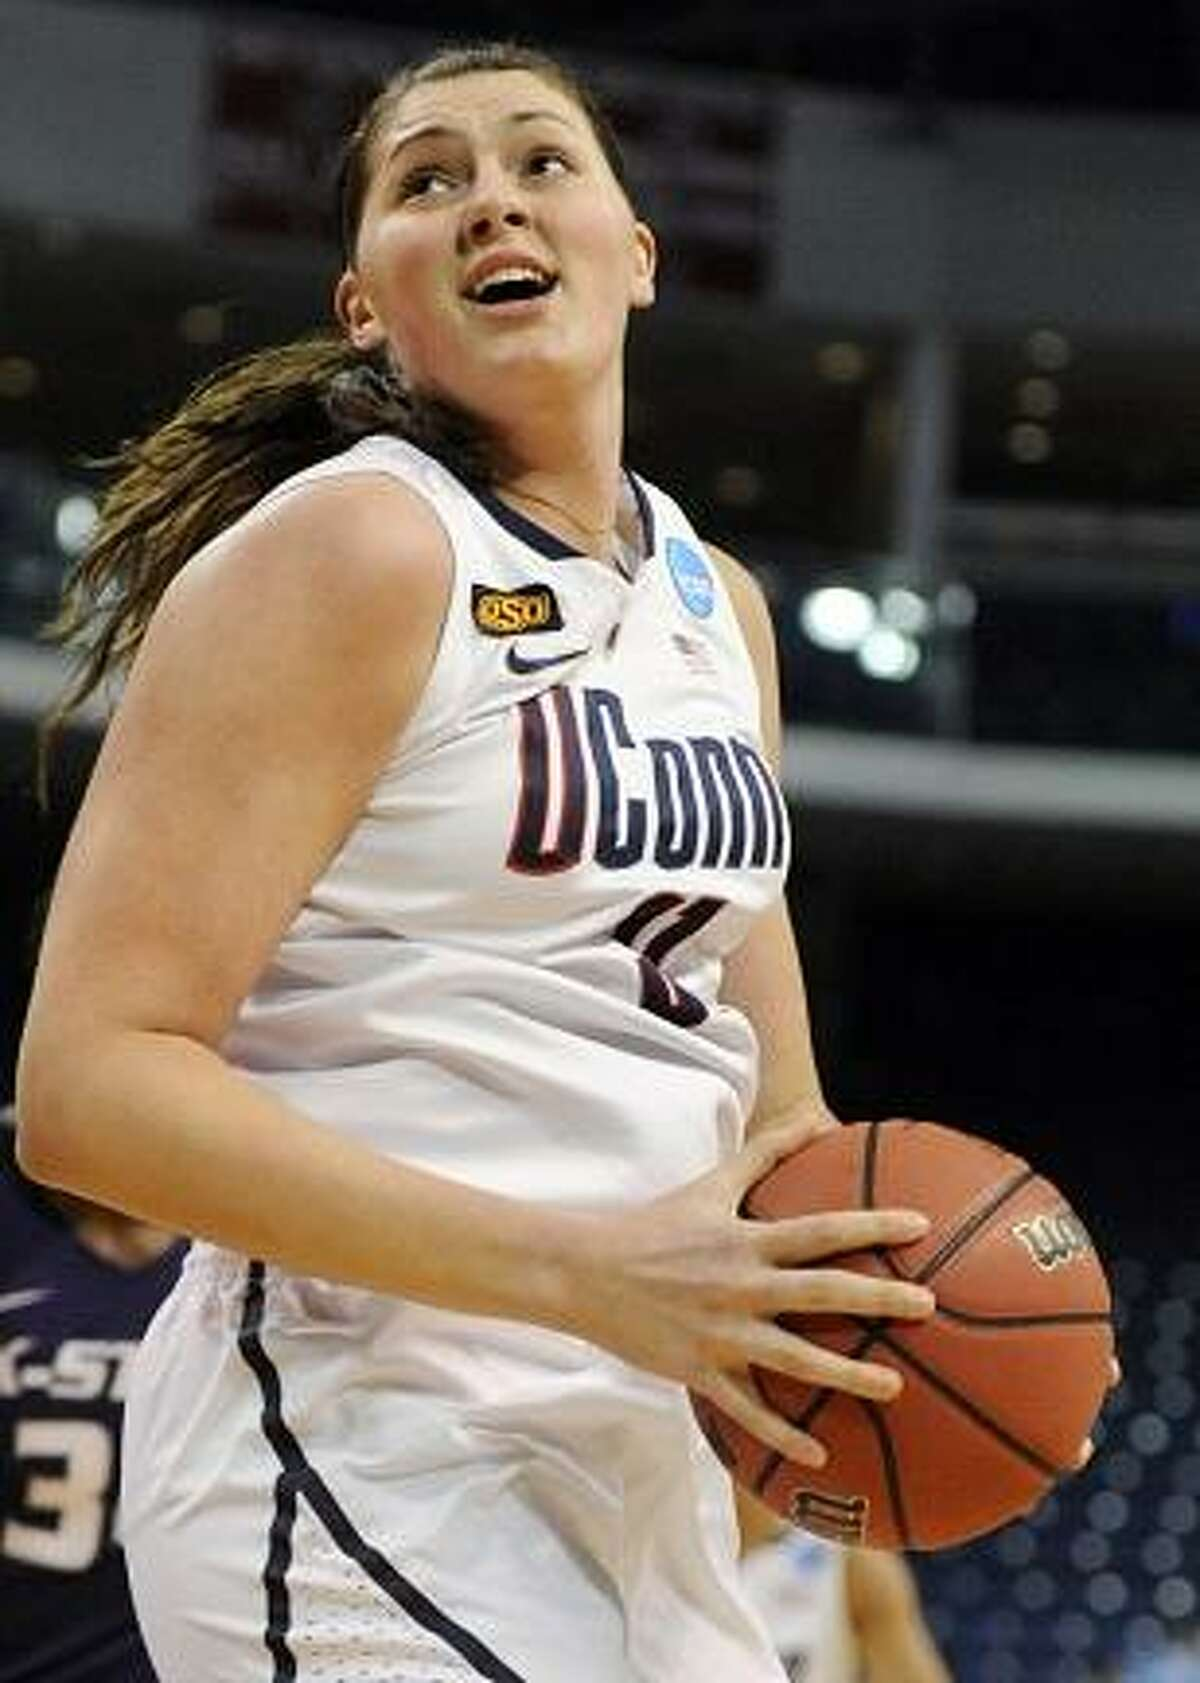 Connecticut's Stefanie Dolson turns to the basket during the first half of an NCAA tournament second-round college basketball game against Kansas State in Bridgeport, Conn., Monday, March 19, 2012. (AP Photo/Jessica Hill)